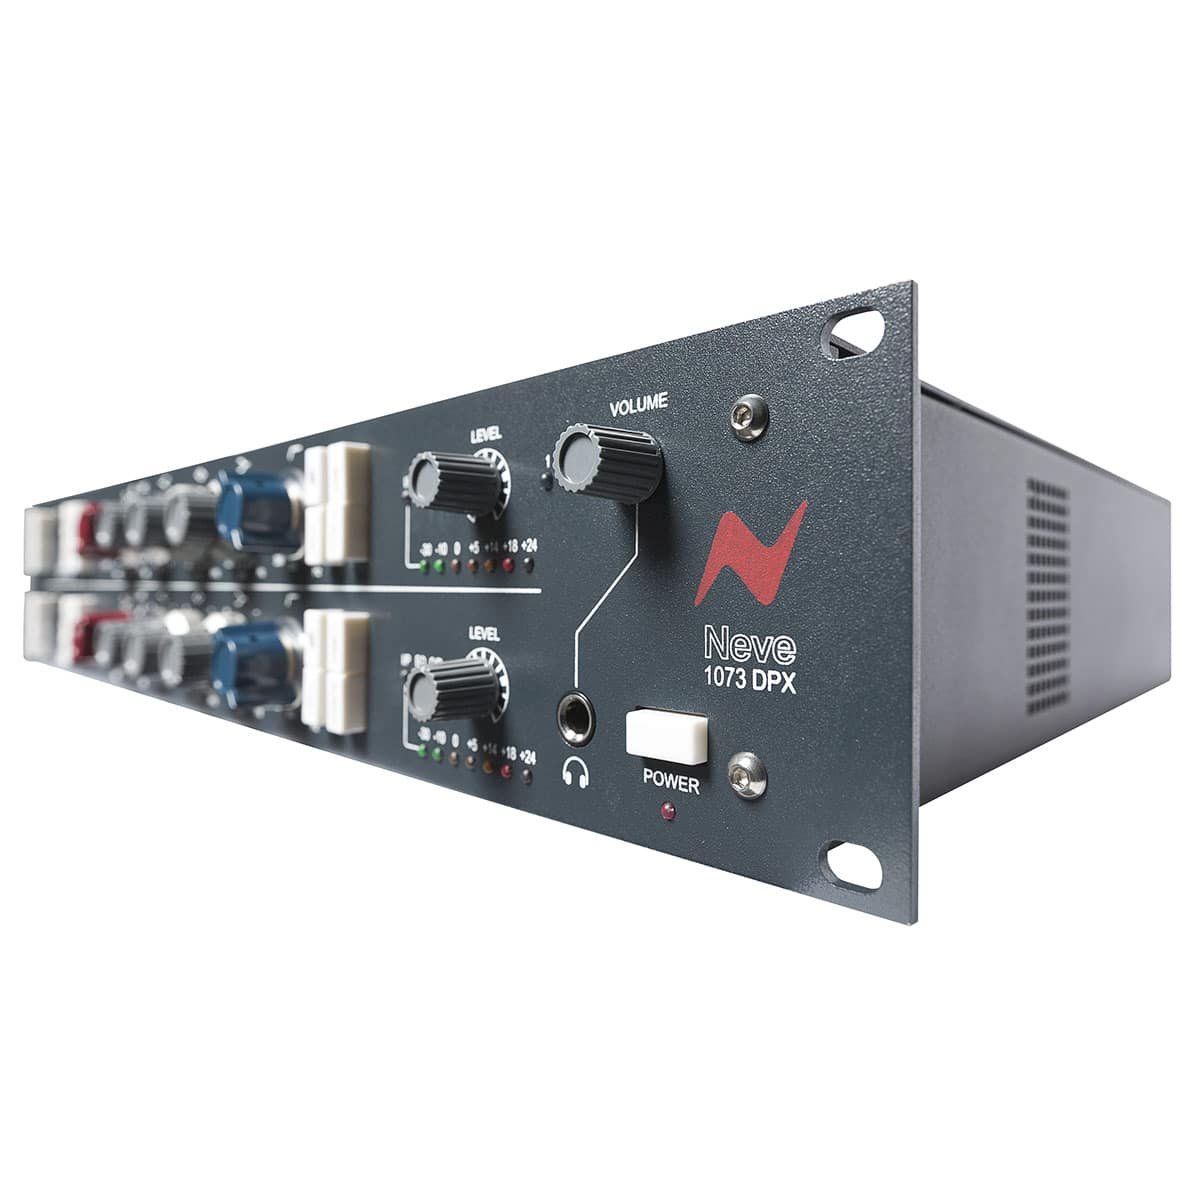 Ams Neve 1073 DPX 05 Neve 1073 DPX